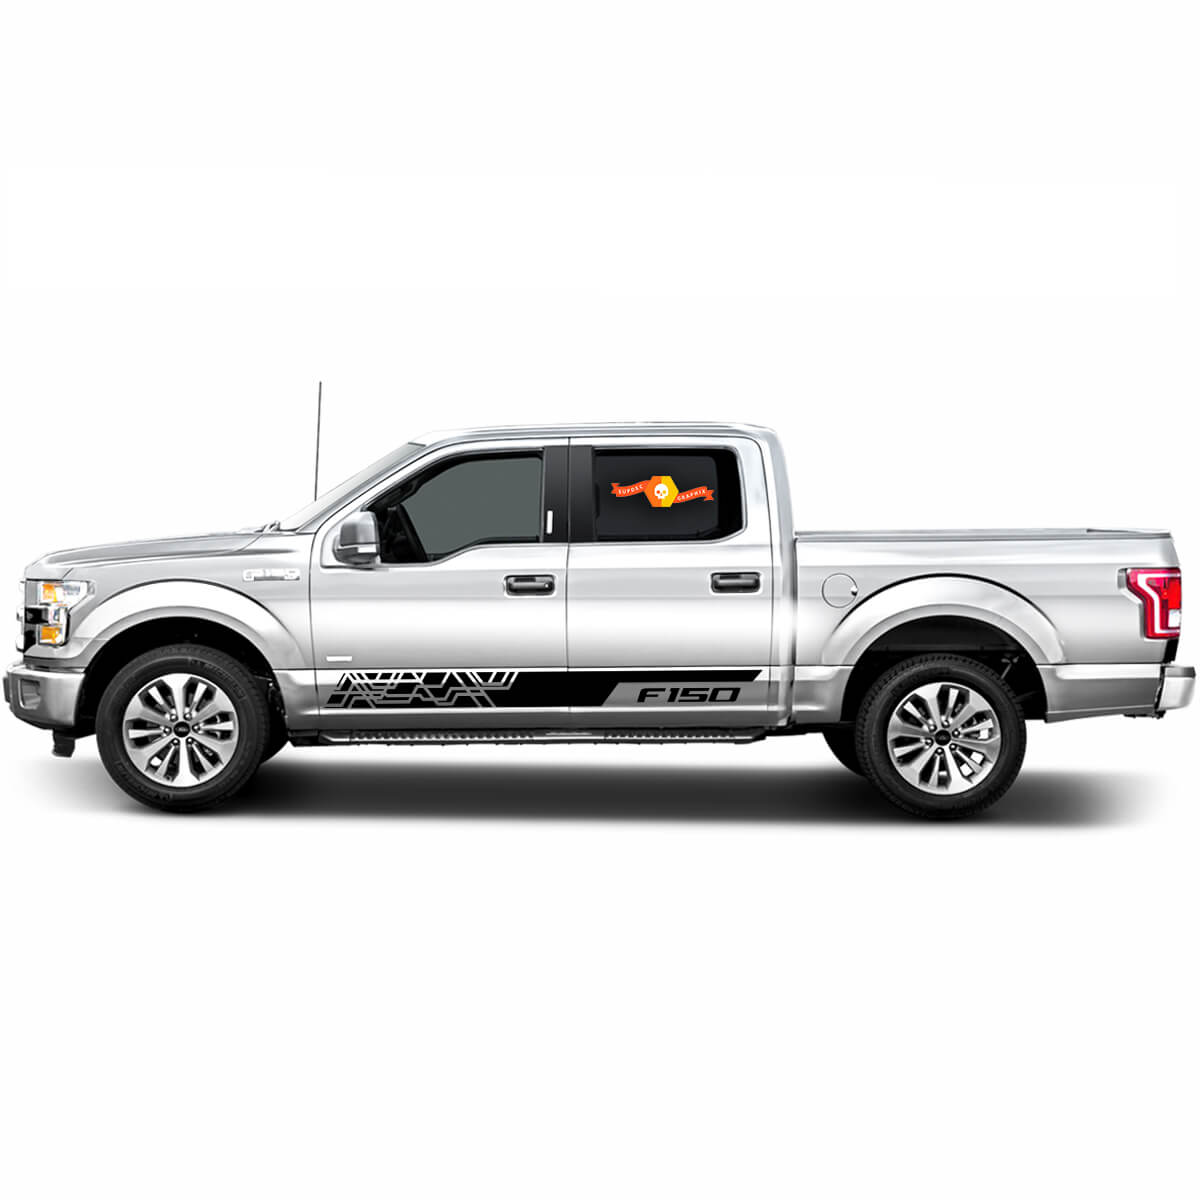 Ford F-150 F150 Vinyl Decal Sticker Graphics Side Door x2